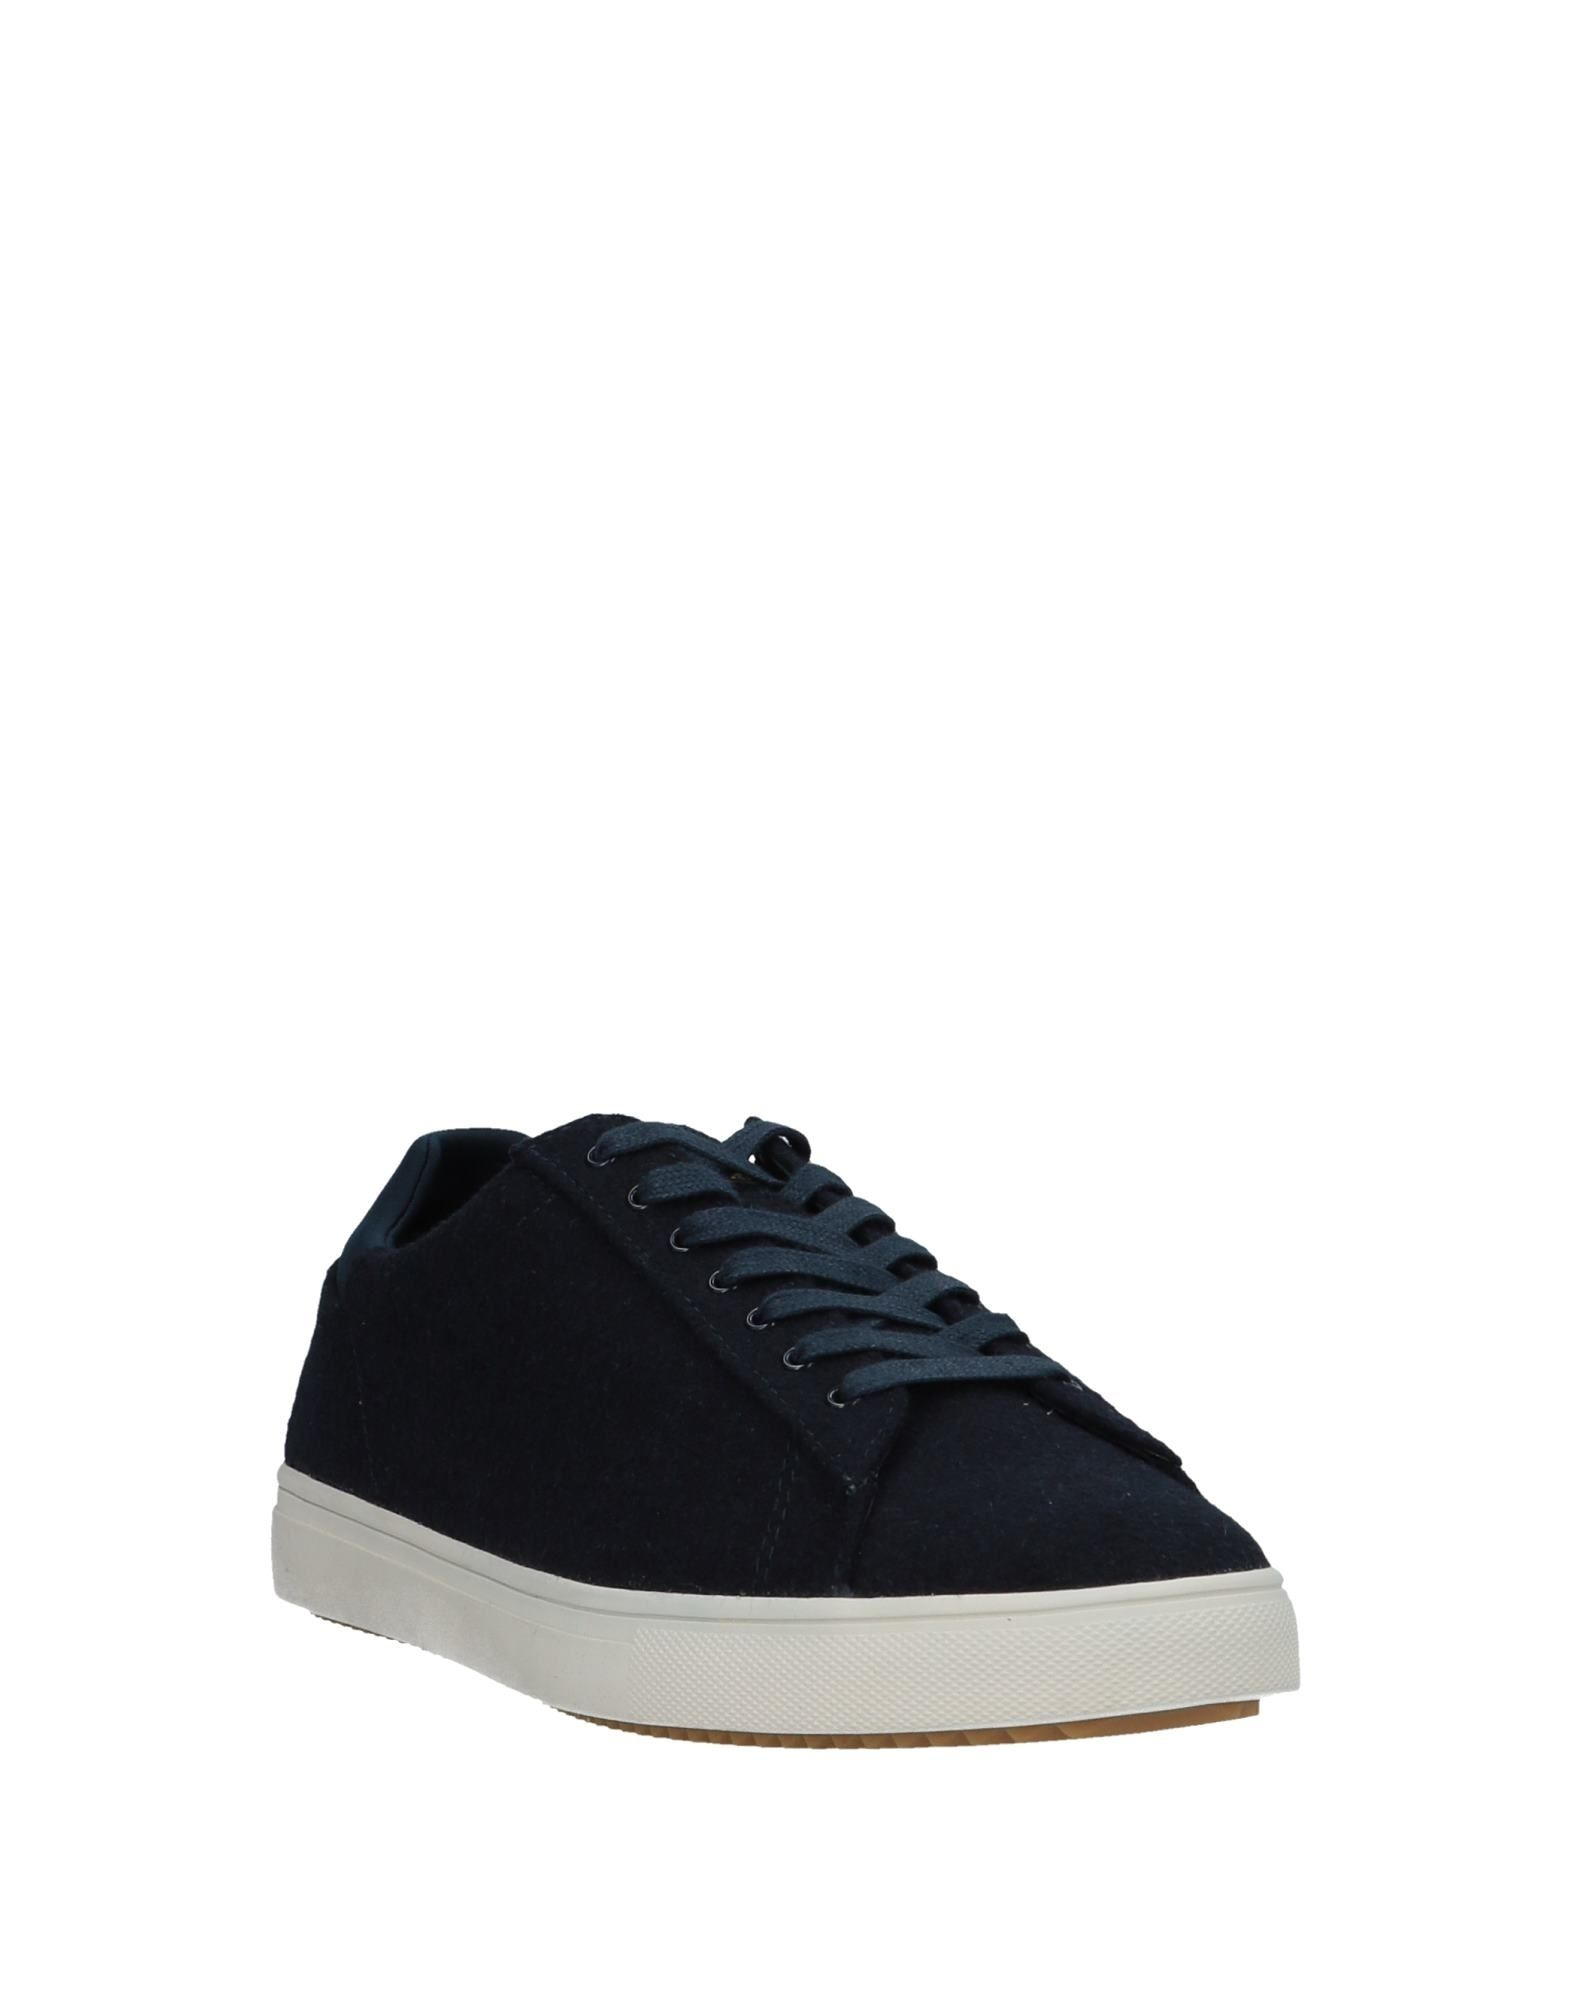 Clae Sneakers Sneakers - Men Clae Sneakers Clae online on  United Kingdom - 11509199VQ b65084